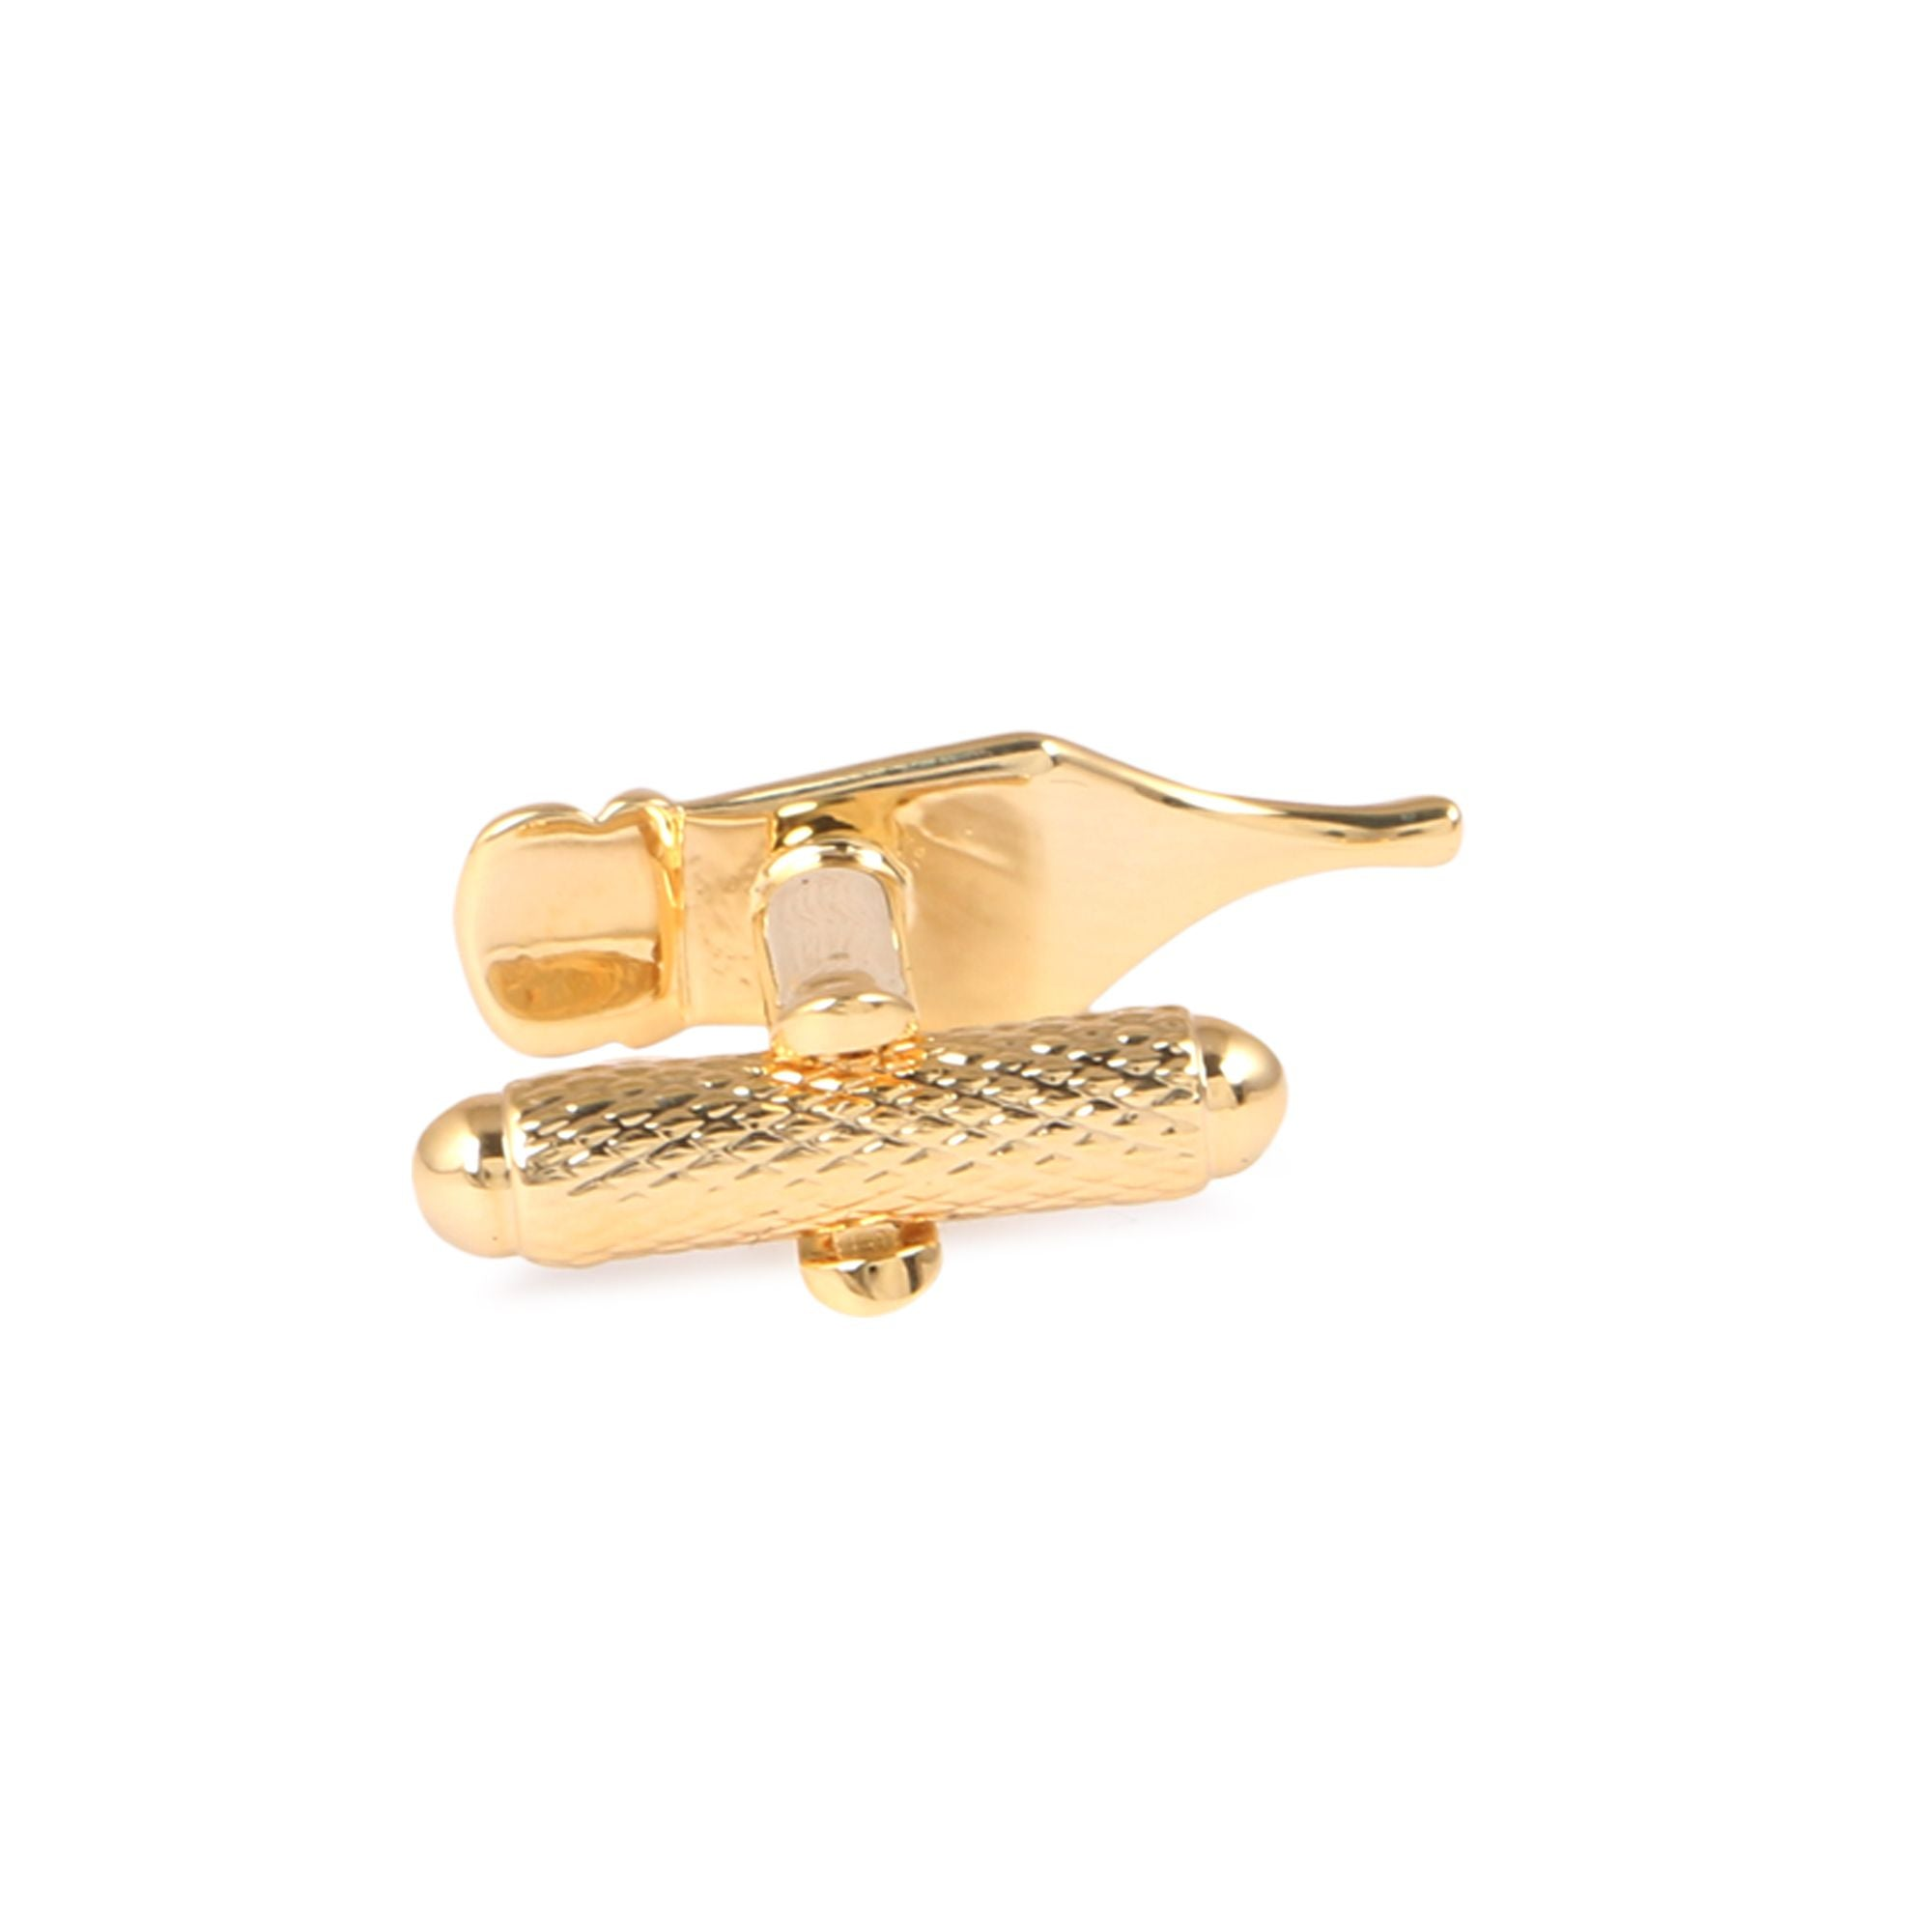 Cufflinks - Fountain Pen Nib Gold